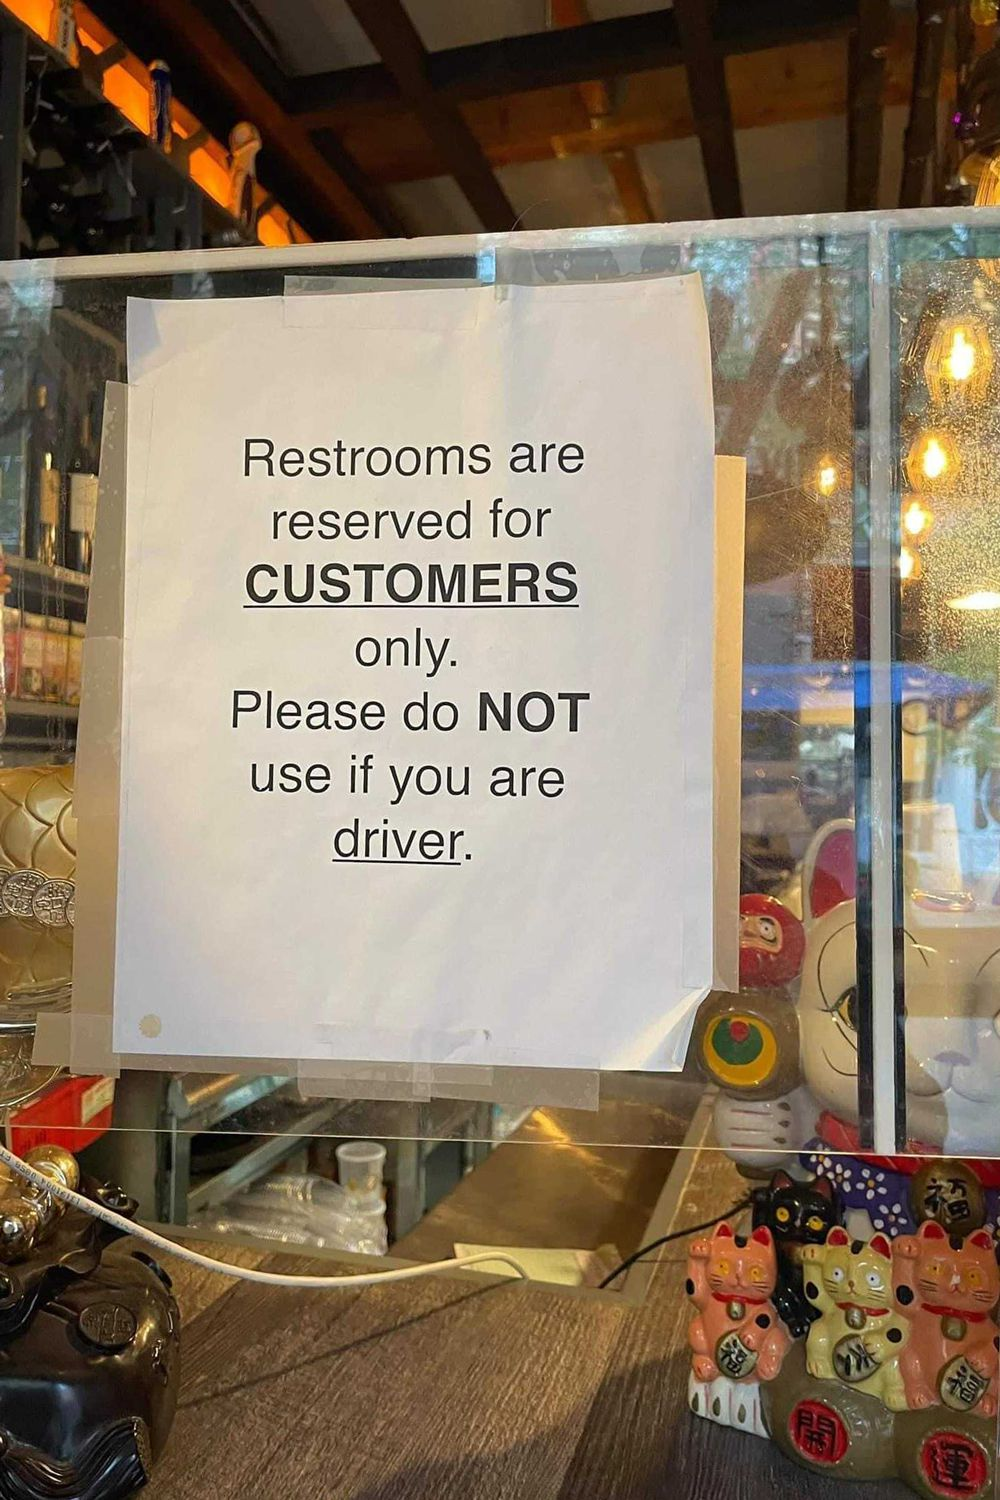 A sign seen on a Lower East Side restaurant's window on April 19, 2021 in Manhattan, NY prohibits delivery drivers from using their restroom facilities.